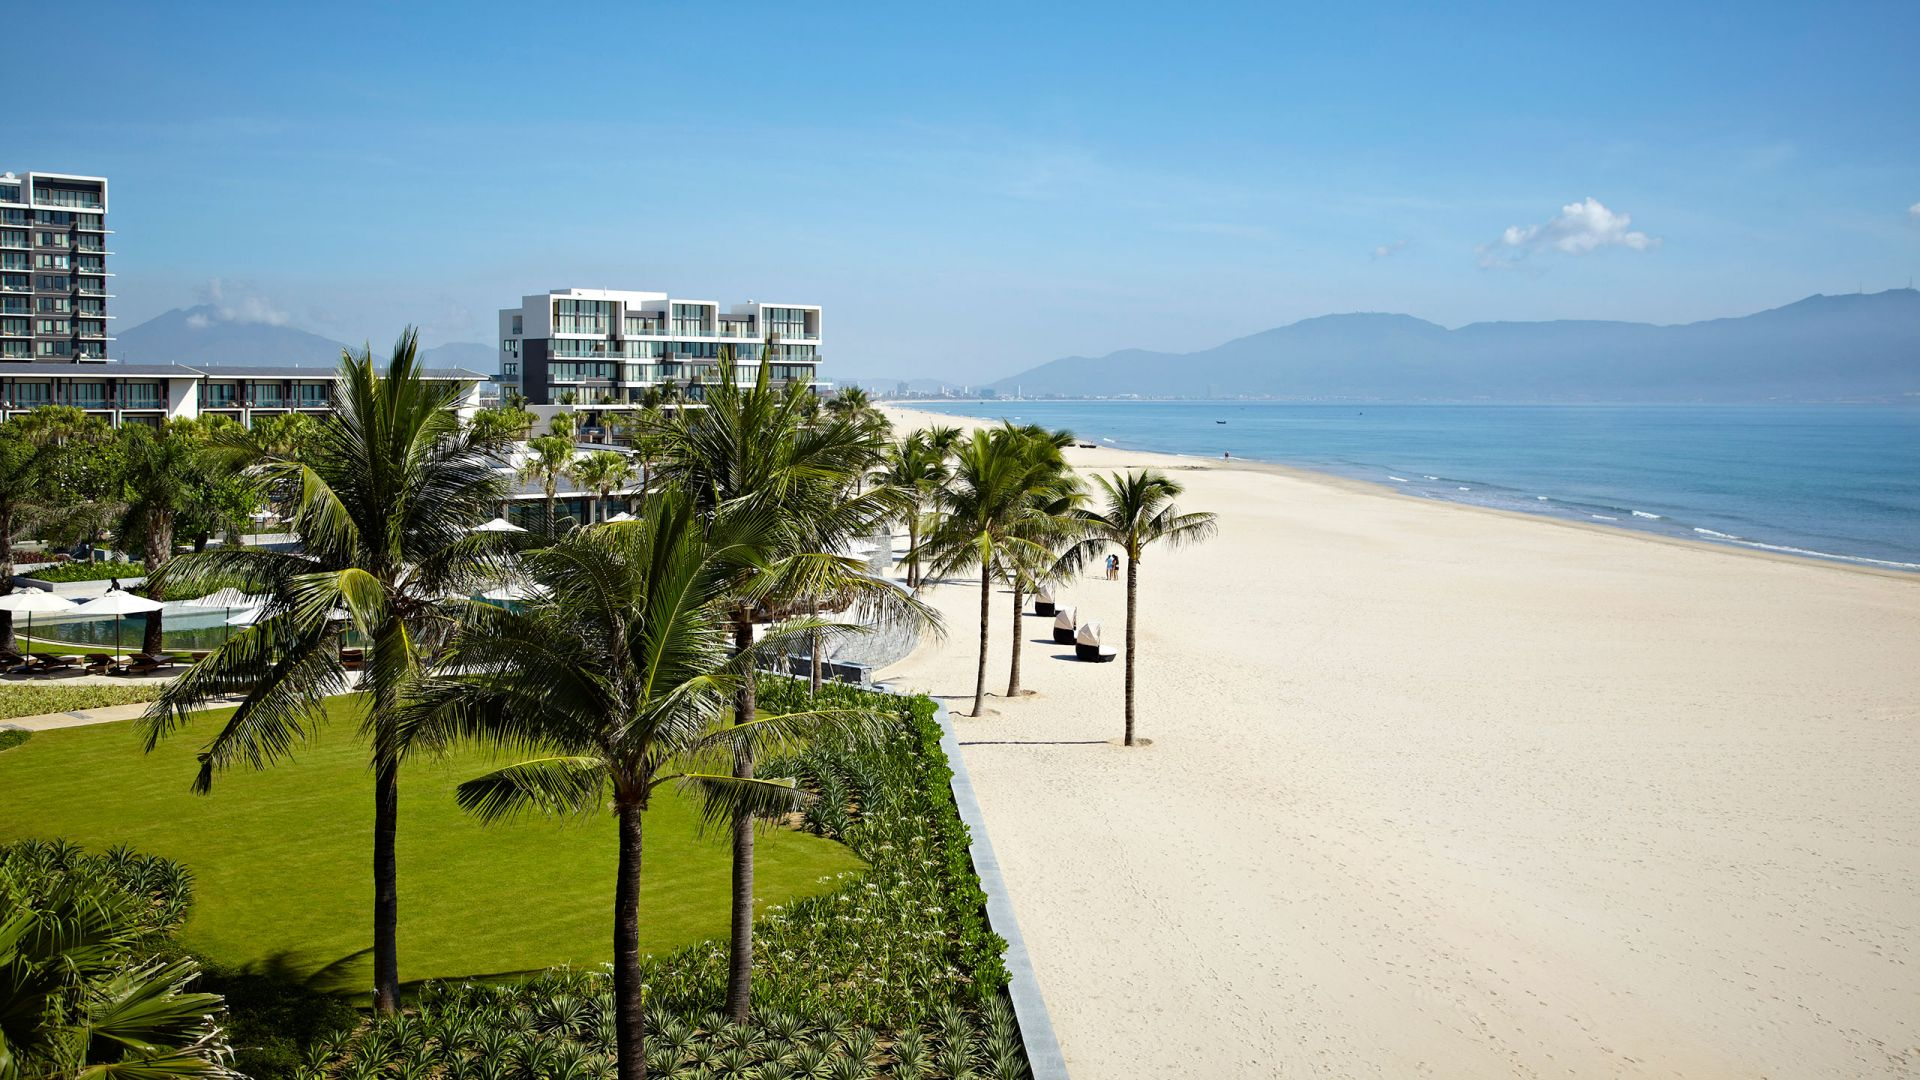 Luxury Beach Resorts Hyatt Regency Danang, Vietnam